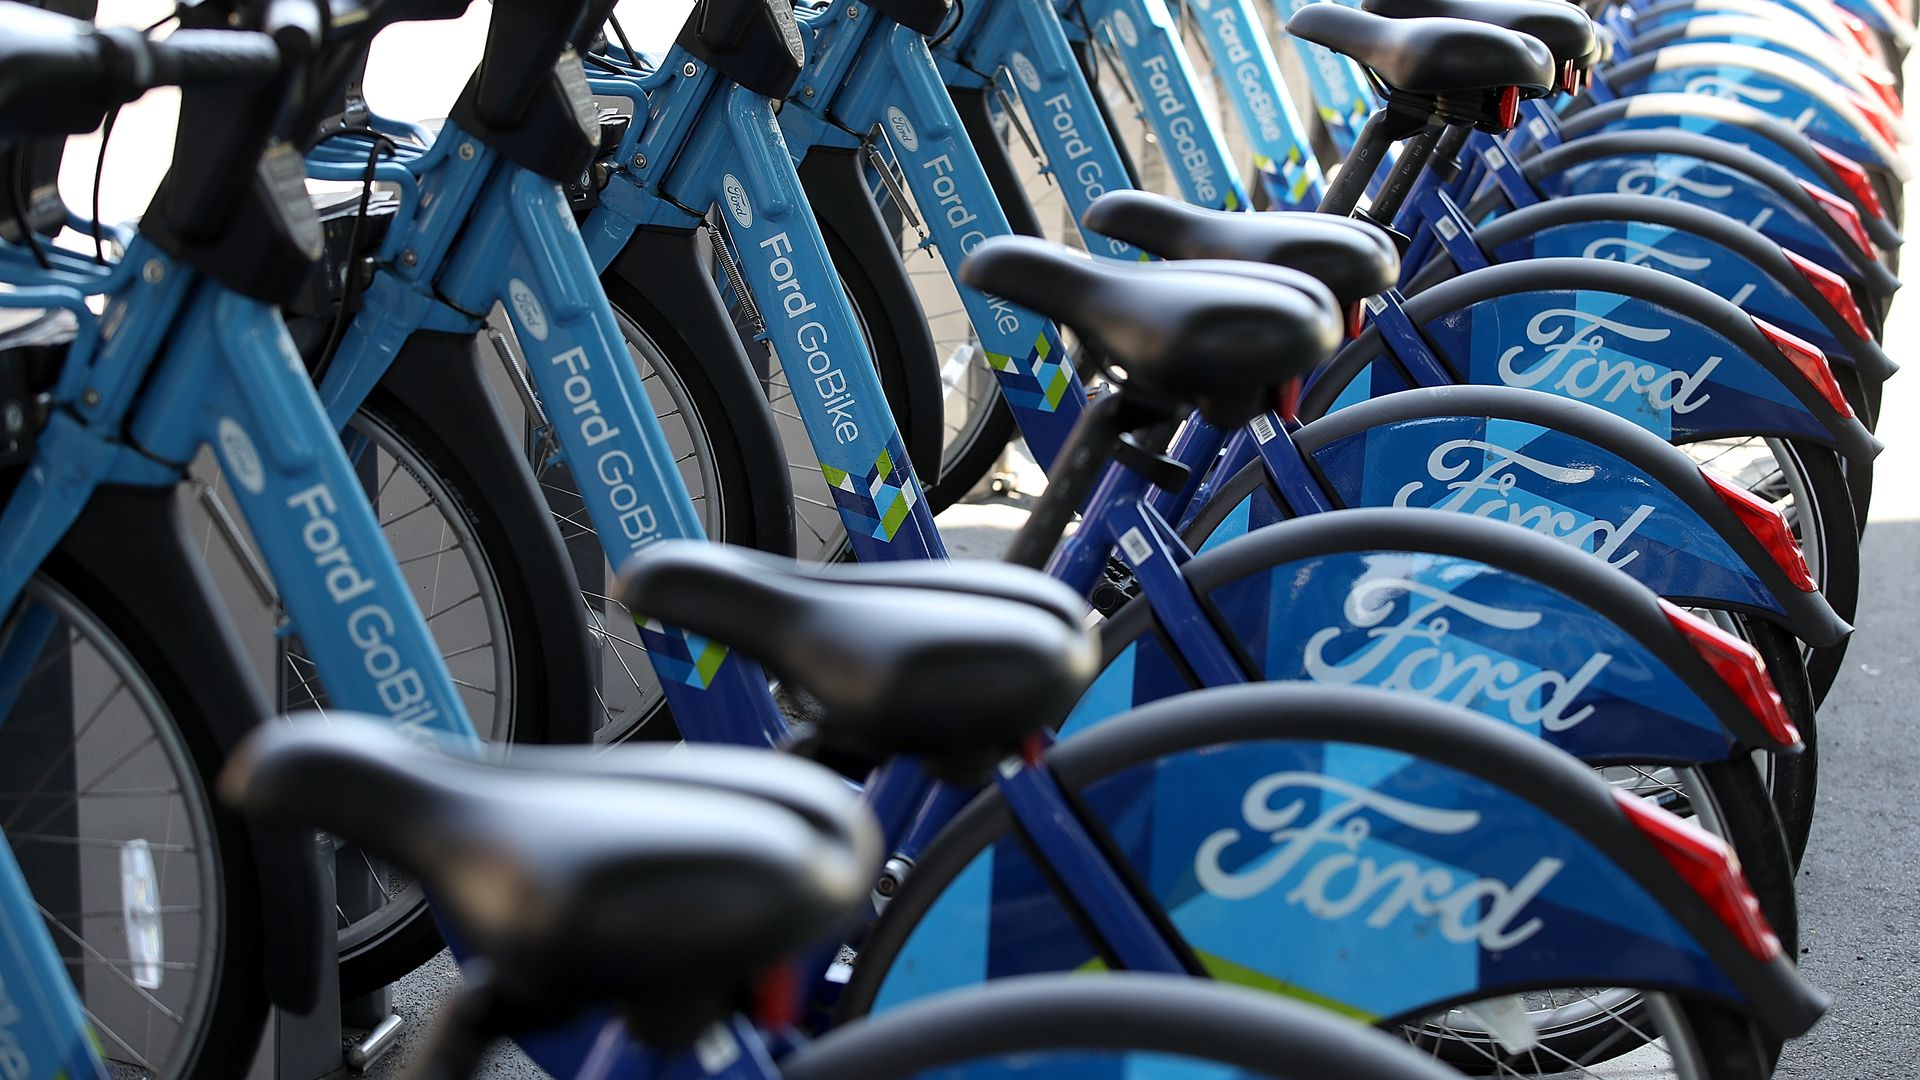 Row of Ford GoBikes for rent in San Francisco.